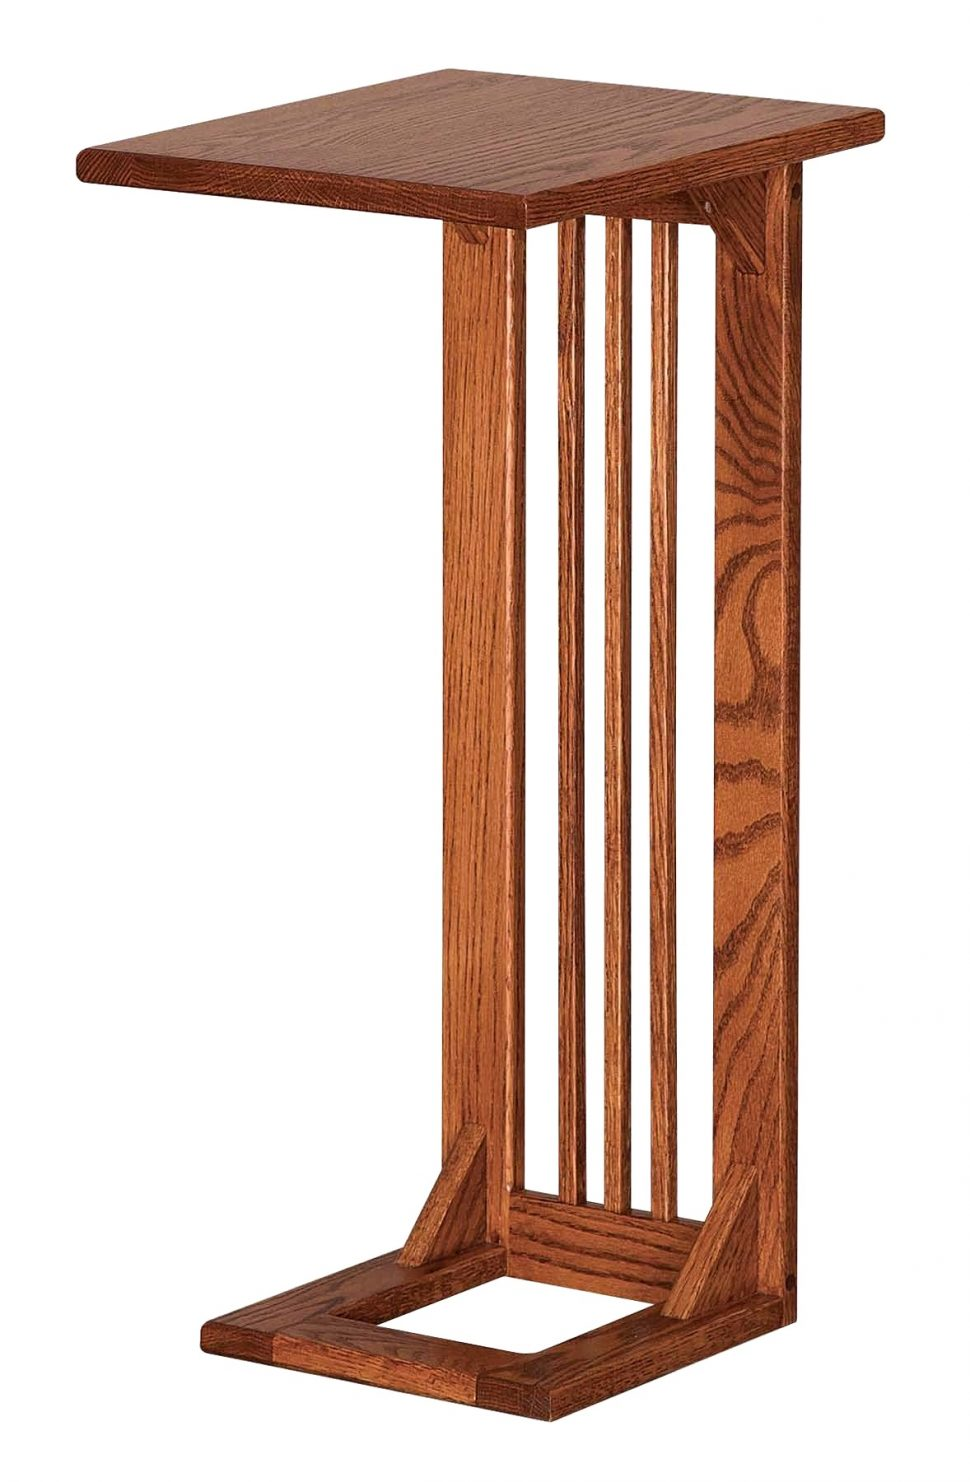 international concepts sofa server table hampton with shelves end rustic ready finish wood amish accent plans full size entry way inexpensive dining chairs wooden bedside designs